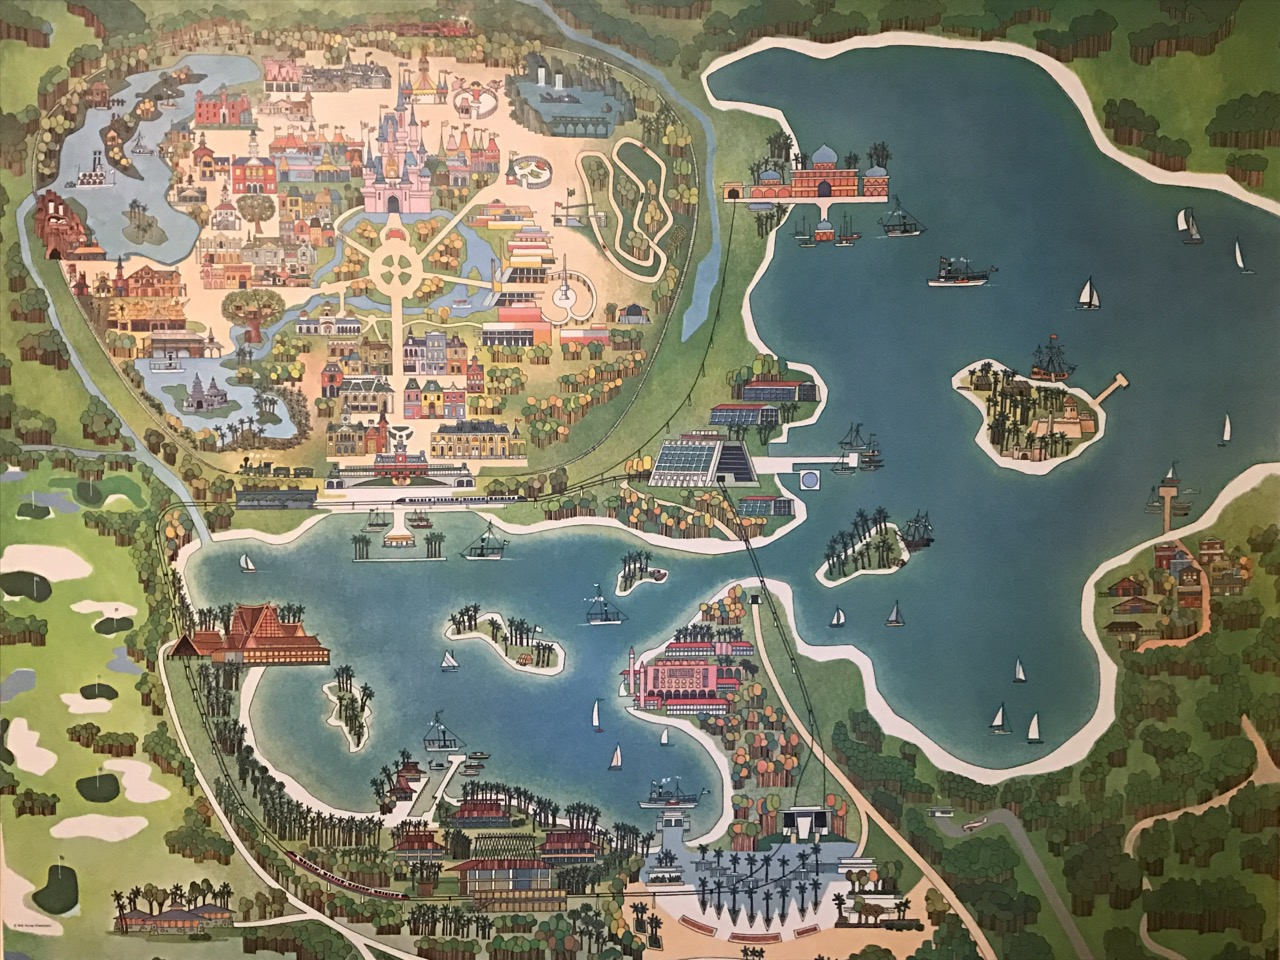 A map of what the Walt Disney World property would become as envisioned around opening in 1971